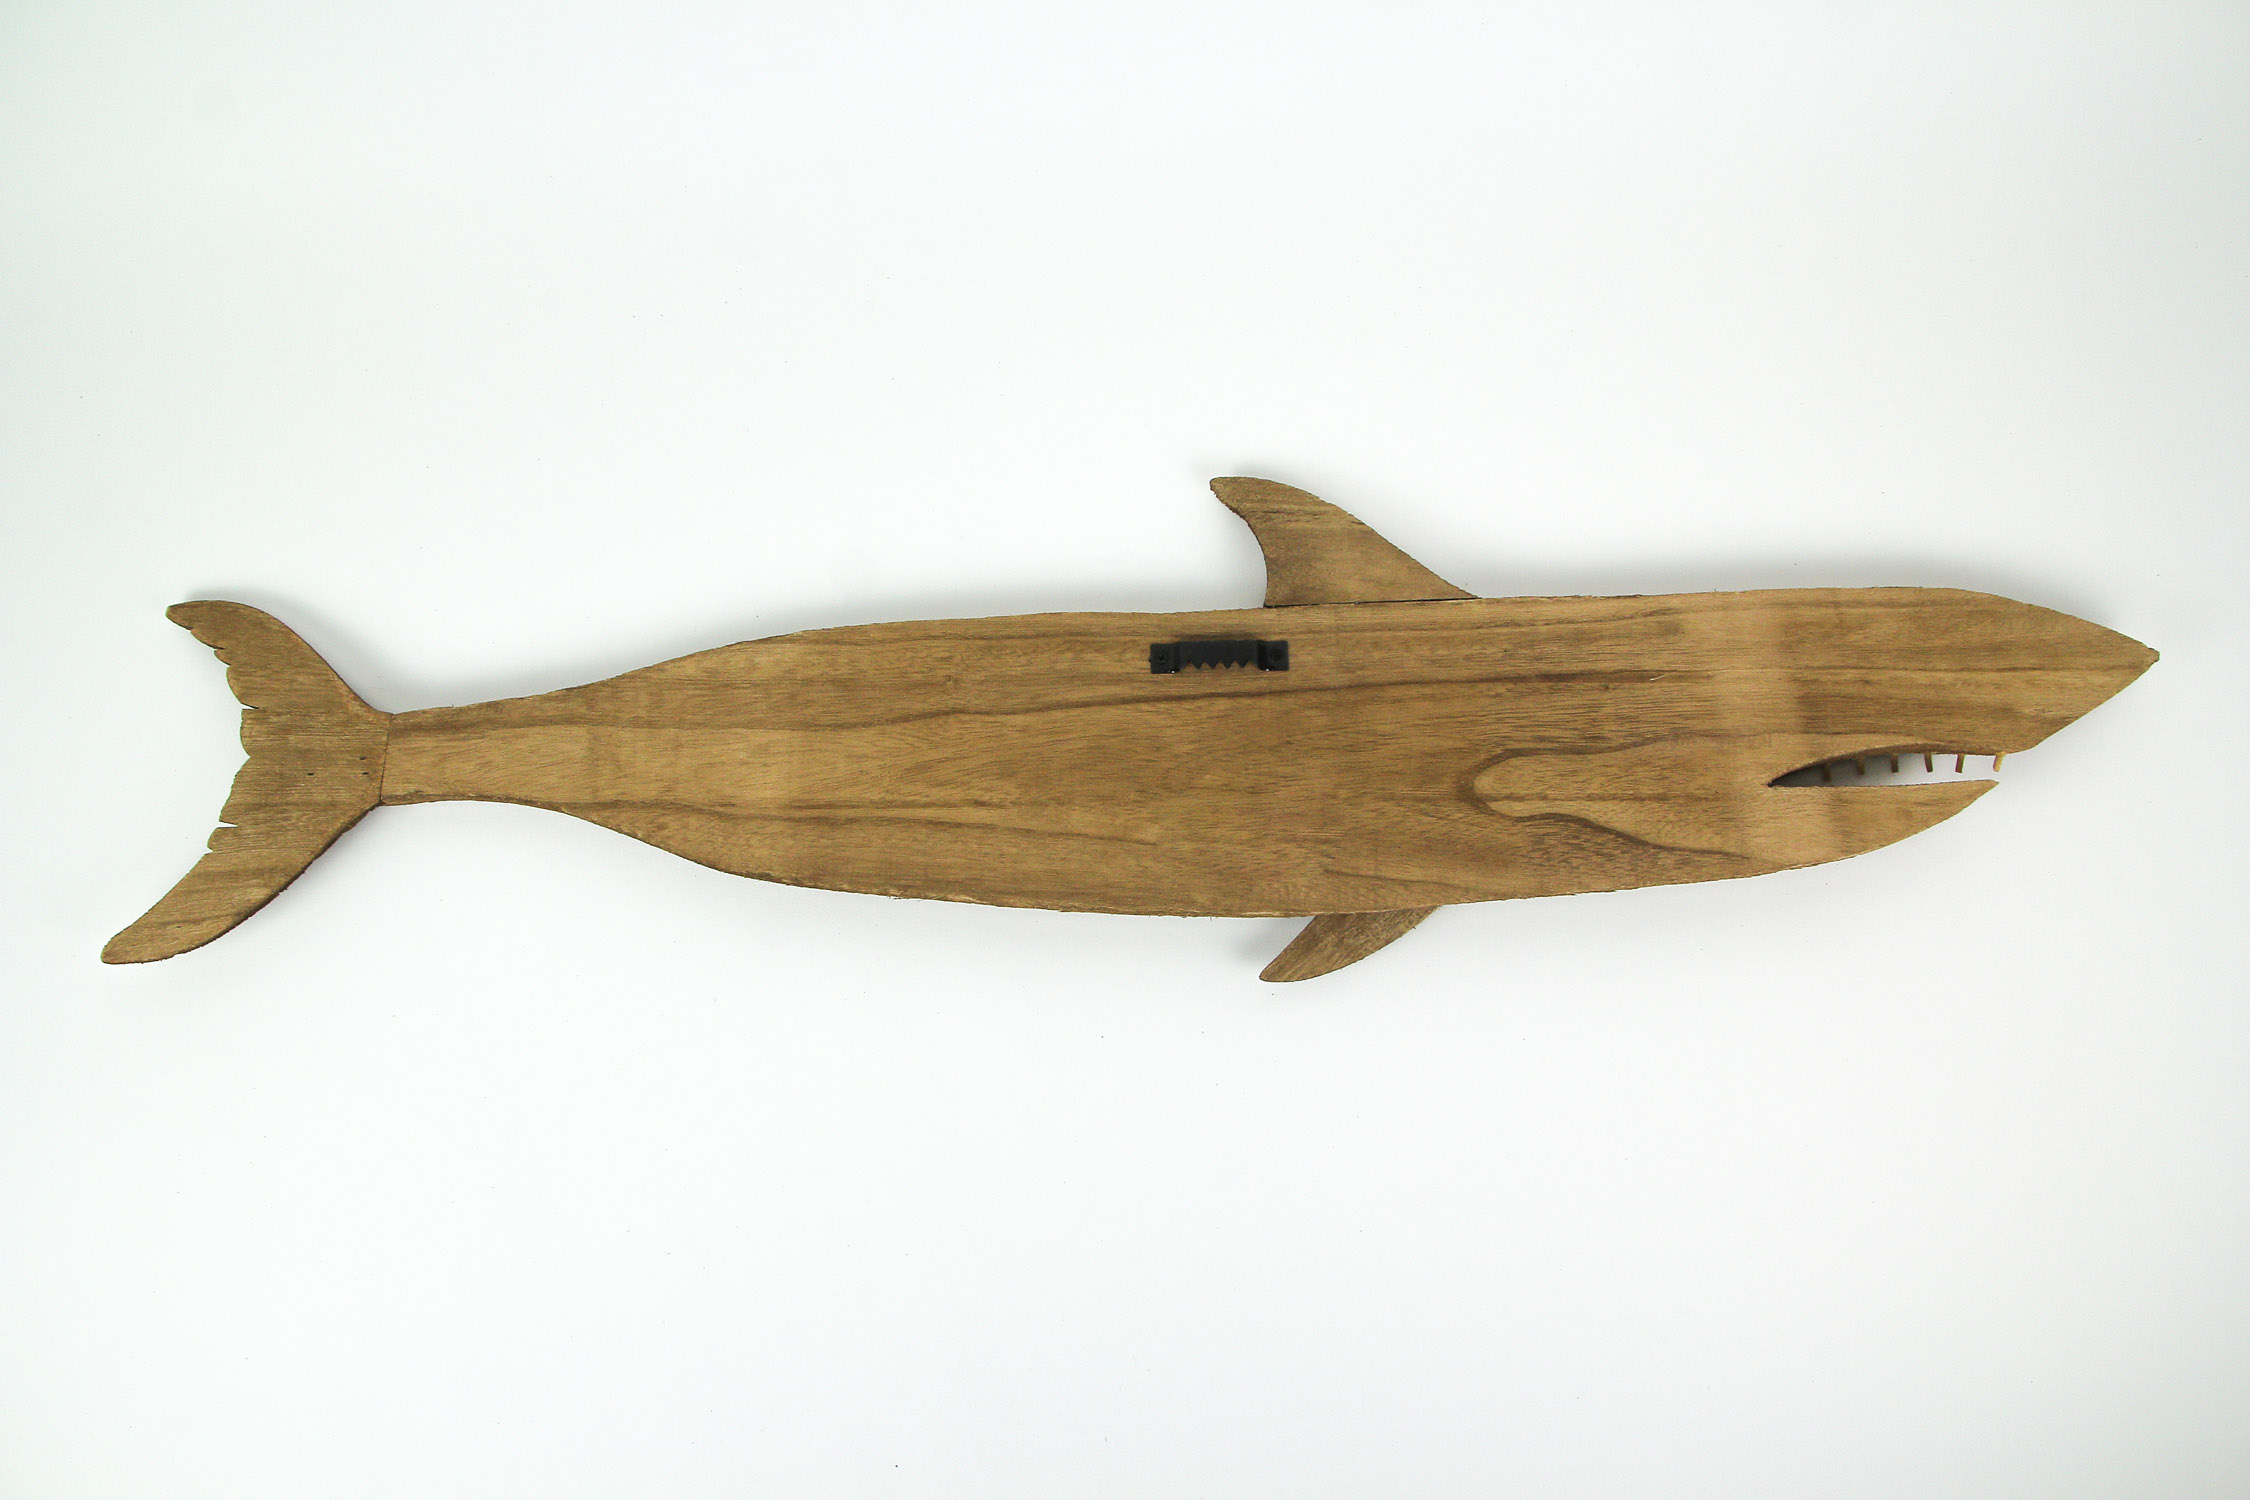 thumbnail 4 - Carved Recycled Wood Great White Shark Wall Sculpture 36 Inches Long